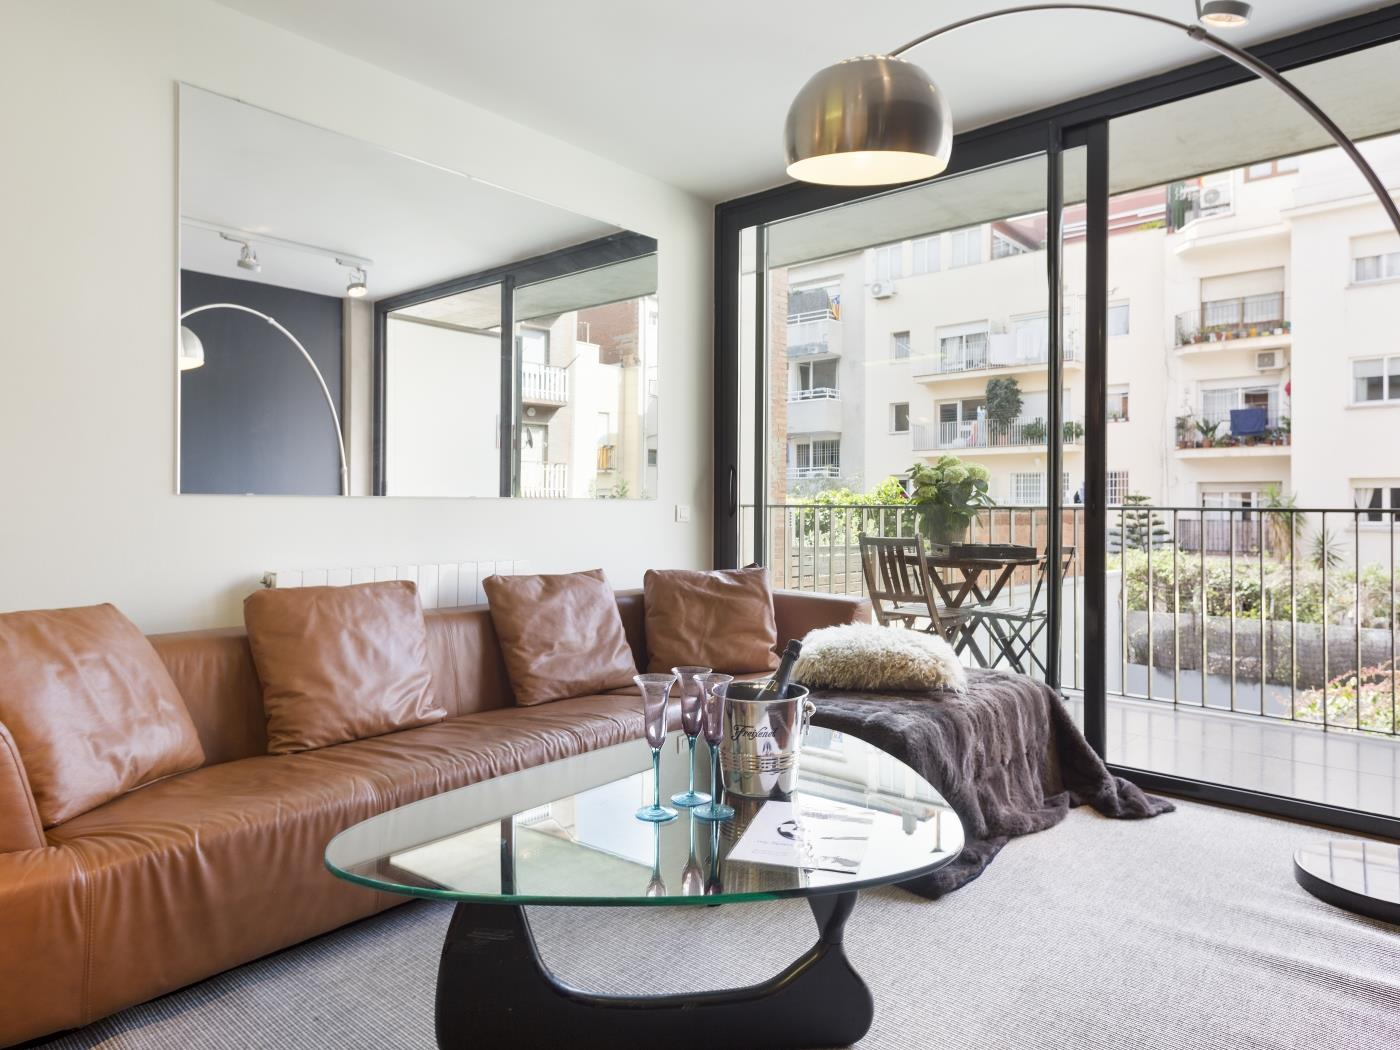 Executive Apartment in Sarrià – Pedralbes - My Space Barcelona Apartments